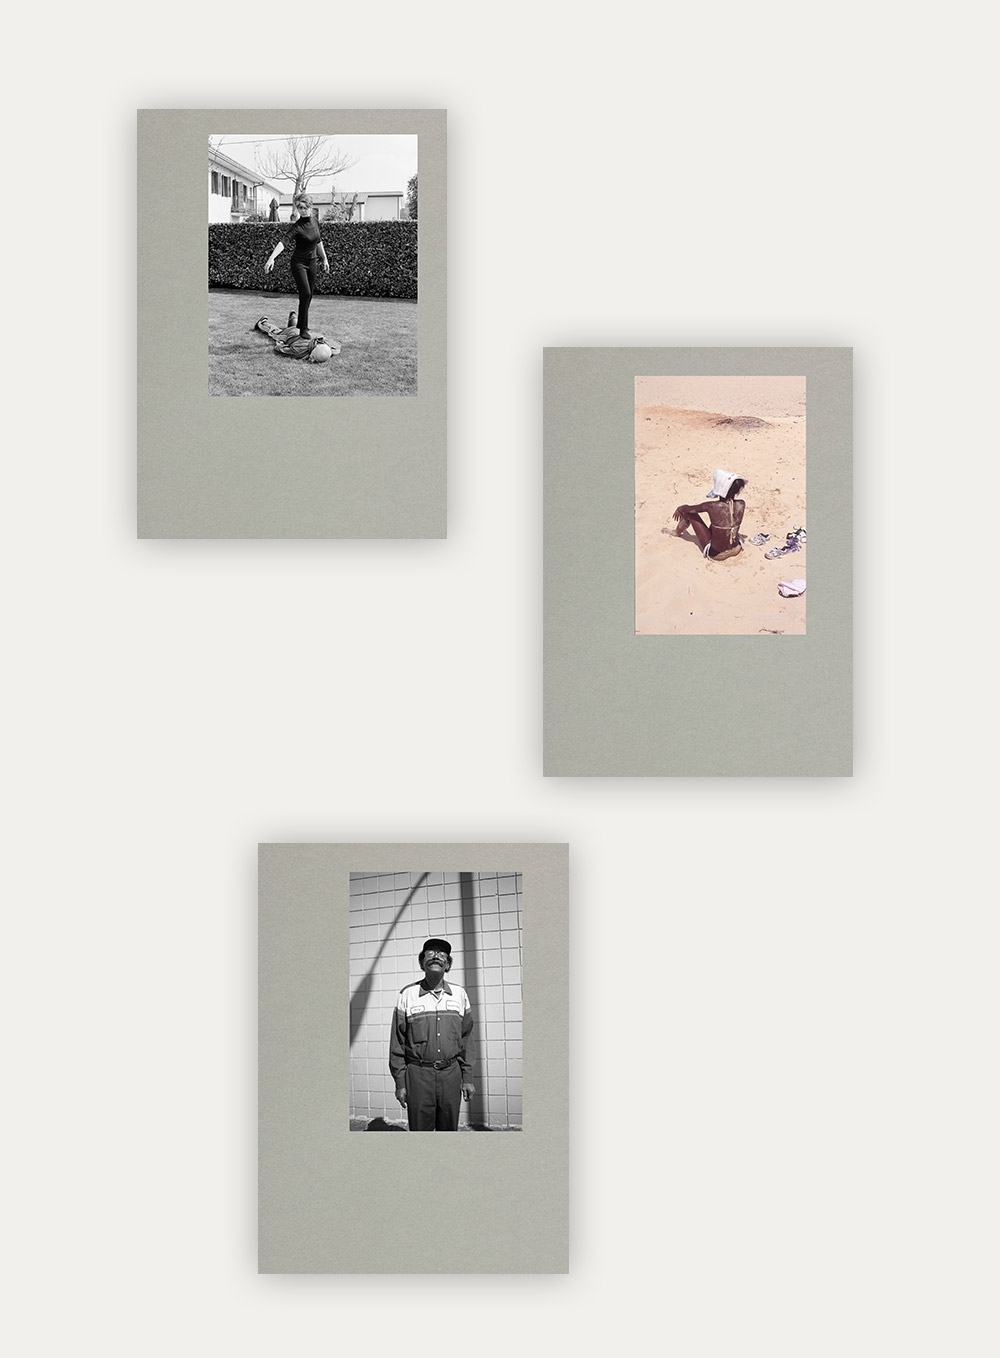 3 photobook covers from 3 different artists, part of the Paper Journal Annual series.